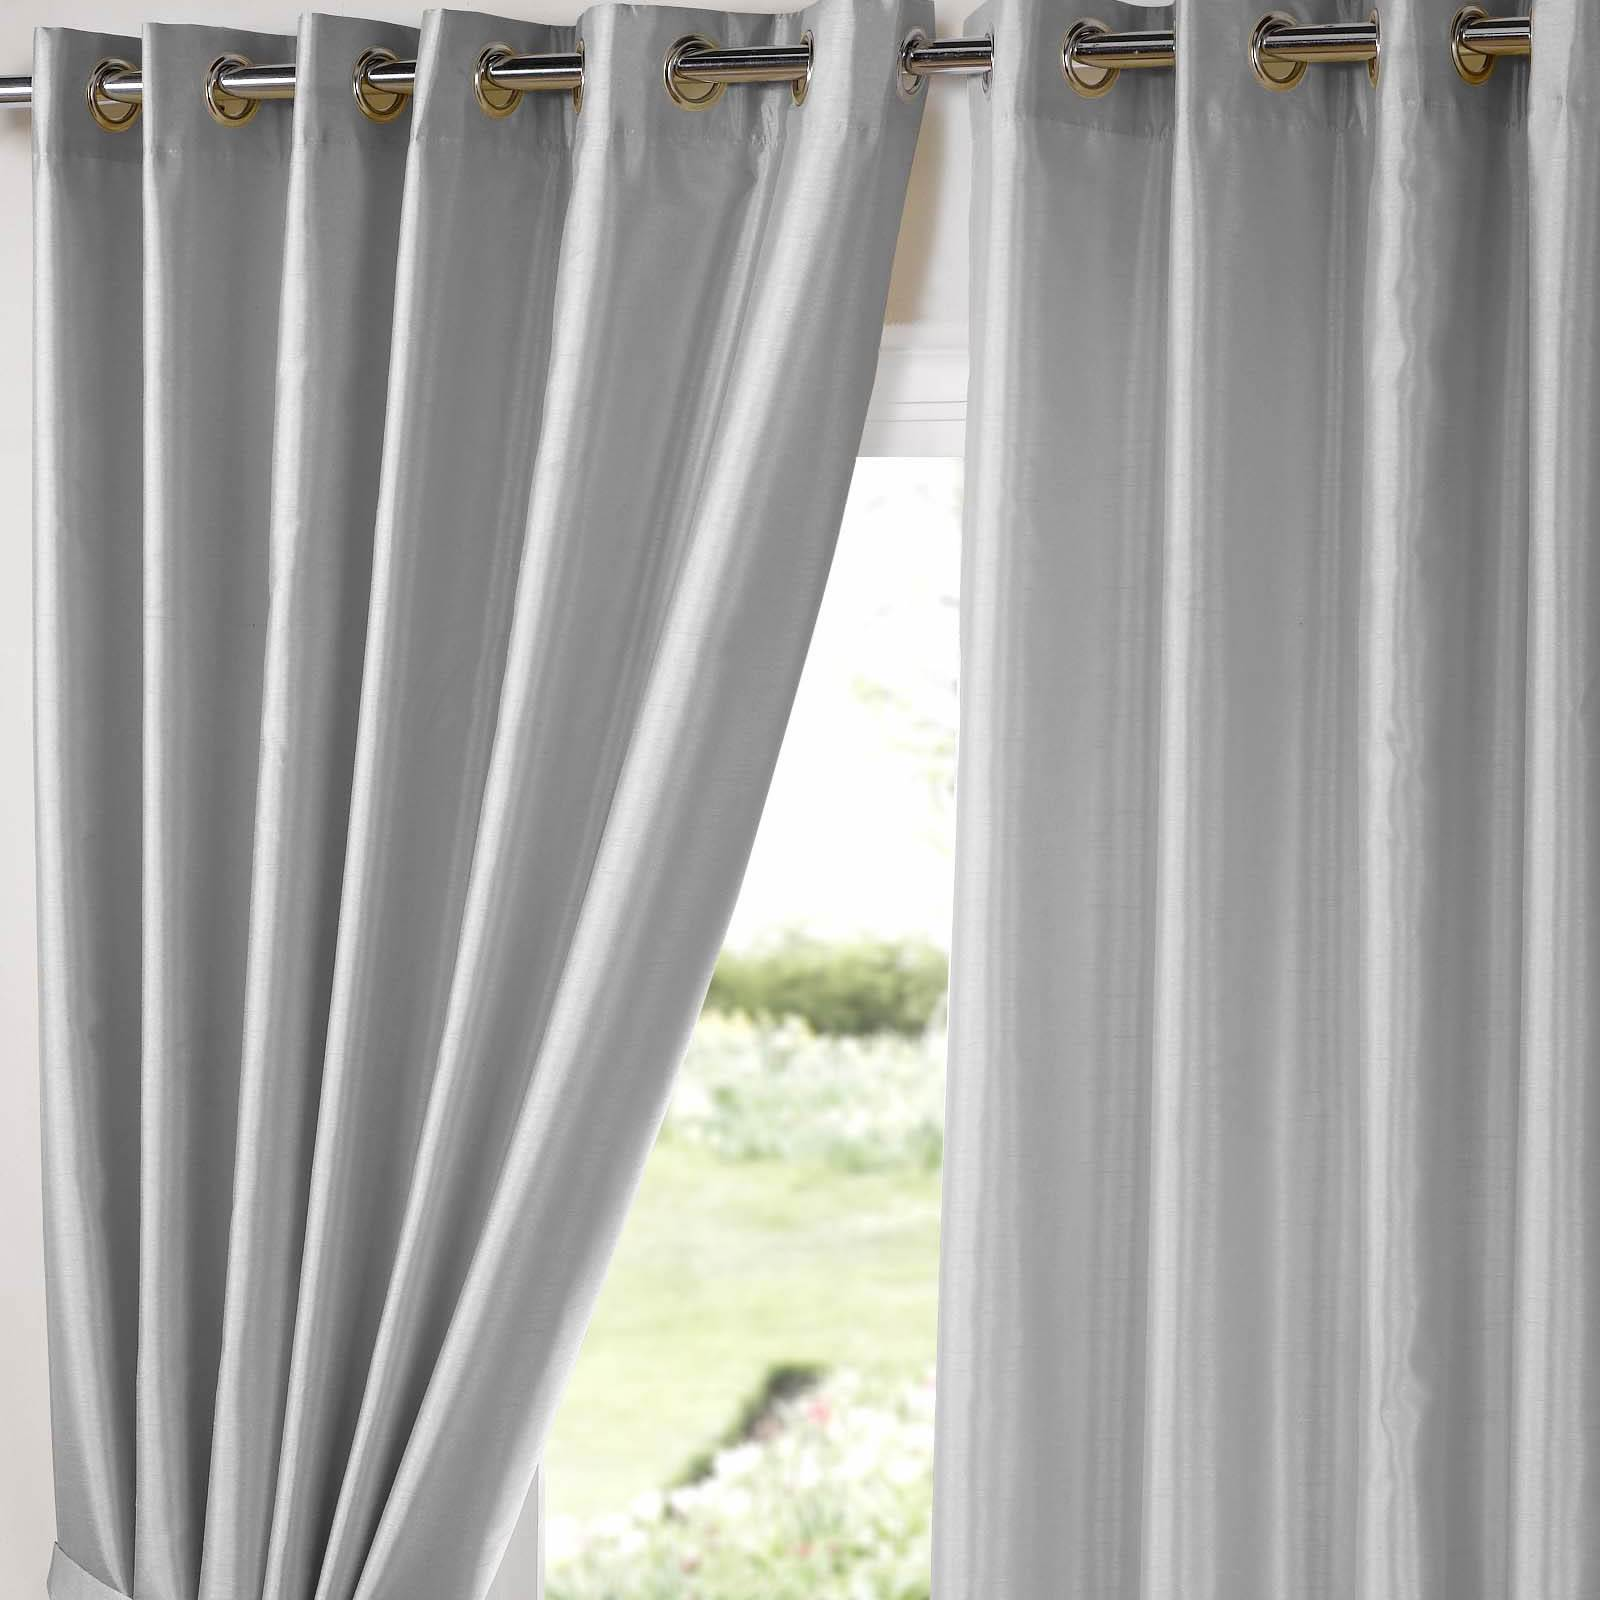 Fully Lined Eyelet Curtains Ring Top Pair Faux Silk Black Silver